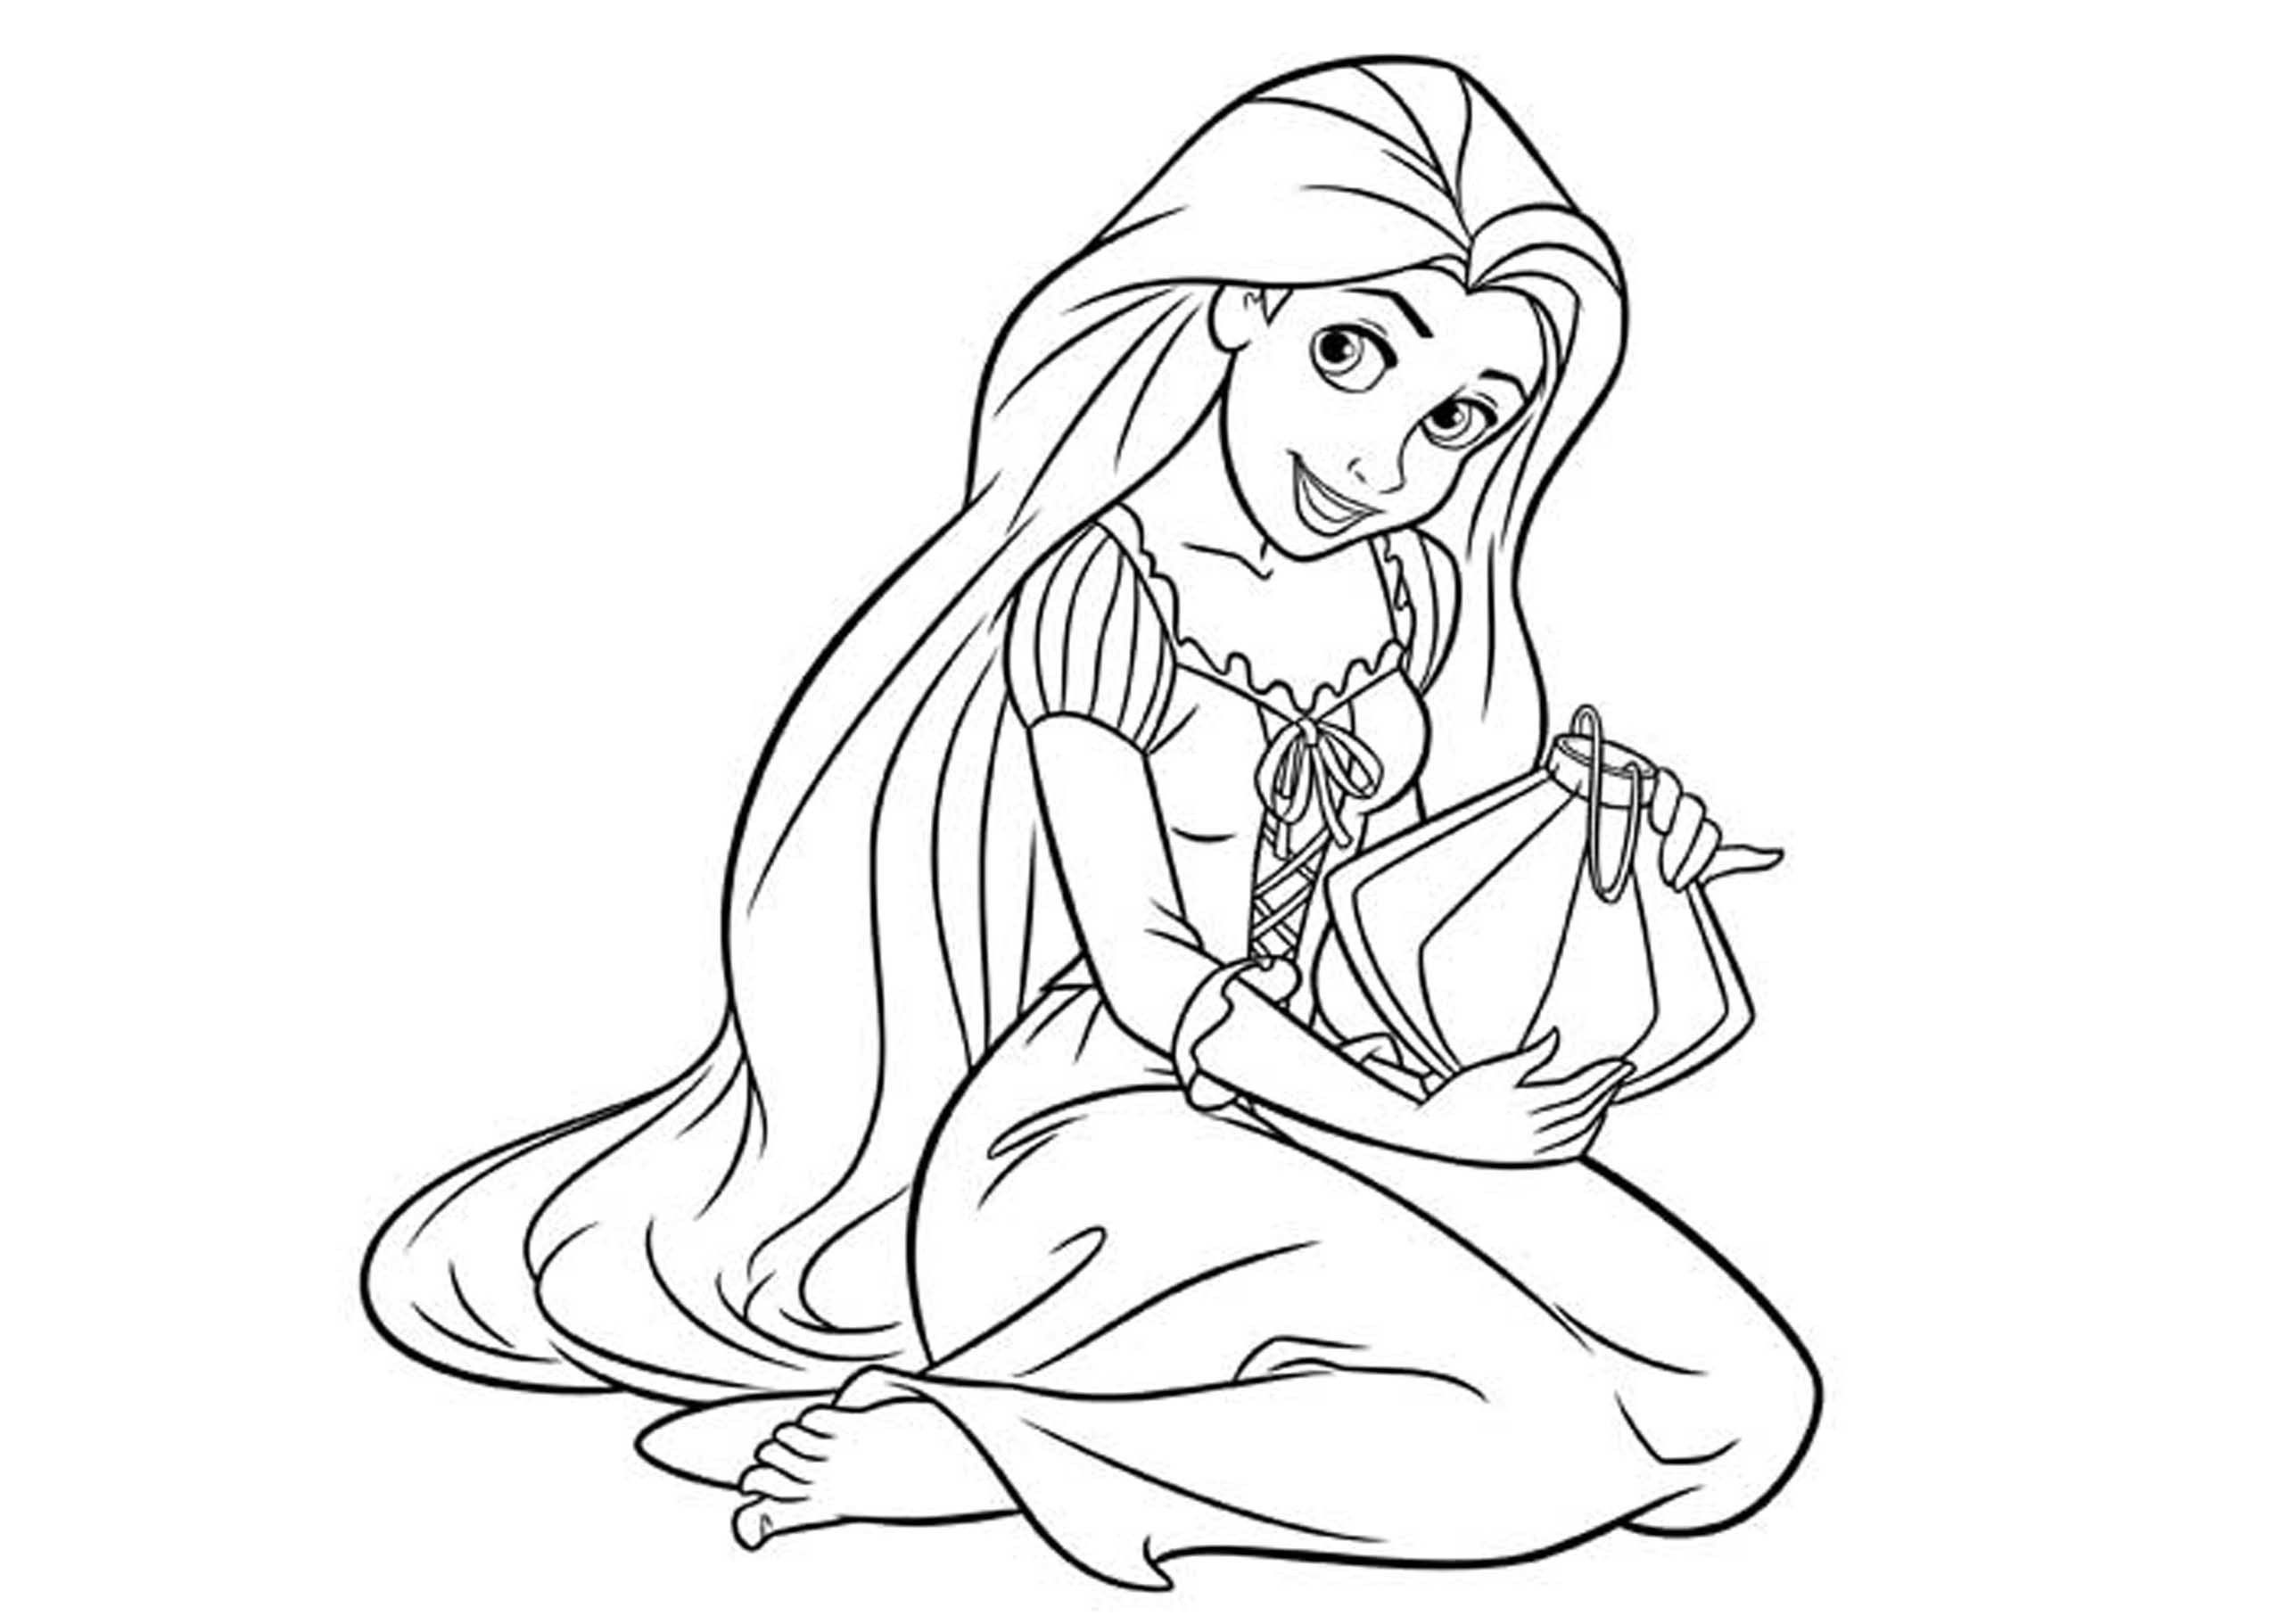 Disney Princess Coloring Pages Printable Free Through The Thousands Of Images O Rapunzel Coloring Pages Disney Princess Coloring Pages Tangled Coloring Pages